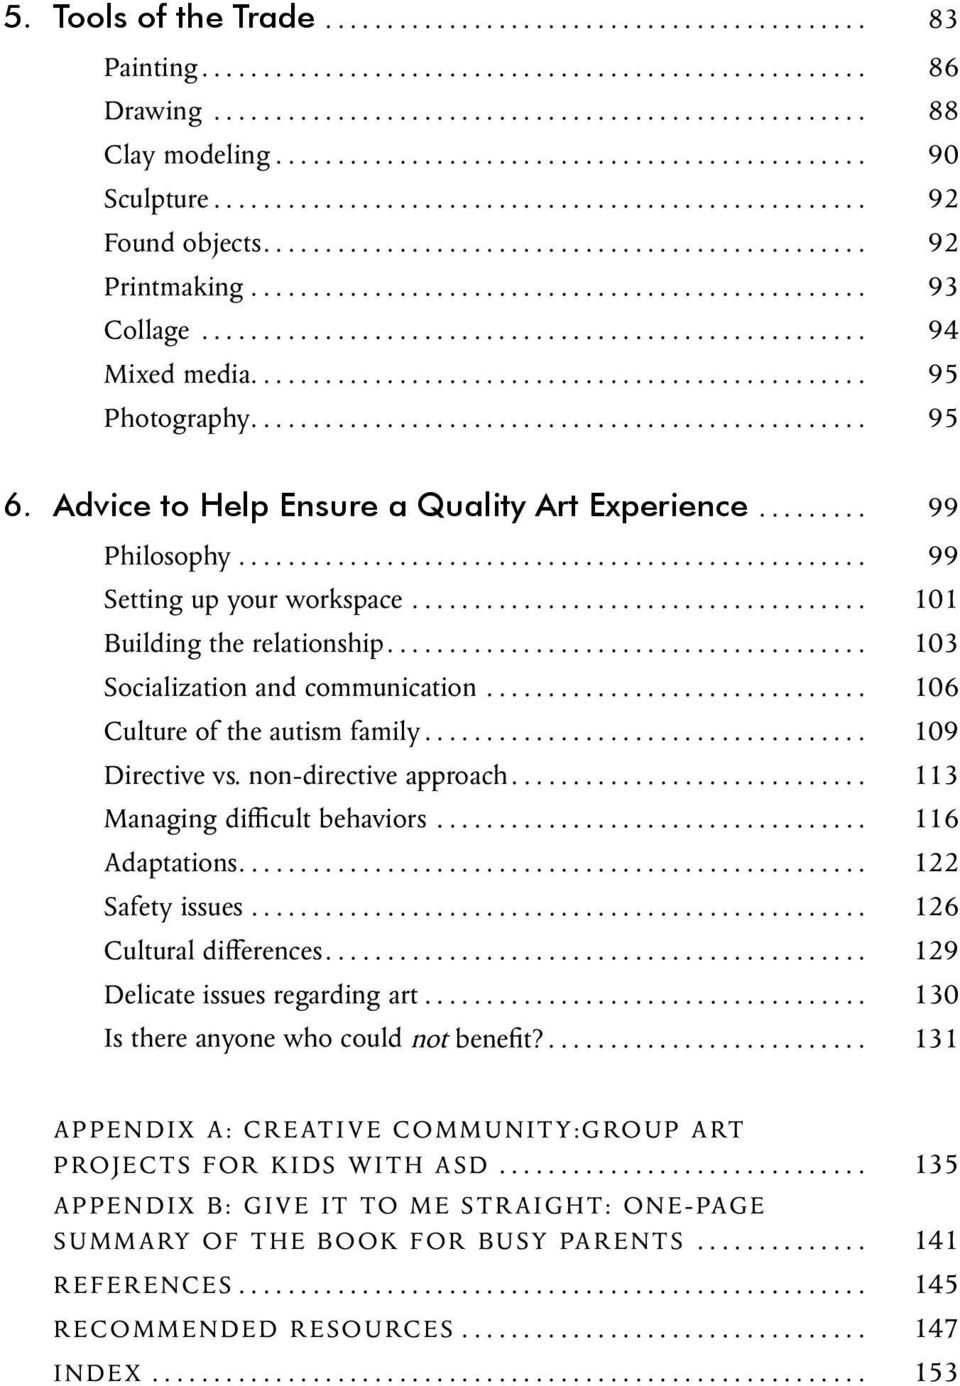 .. 106 Culture of the autism family... 109 Directive vs. non-directive approach... 113 Managing difficult behaviors... 116 Adaptations... 122 Safety issues... 126 Cultural differences.